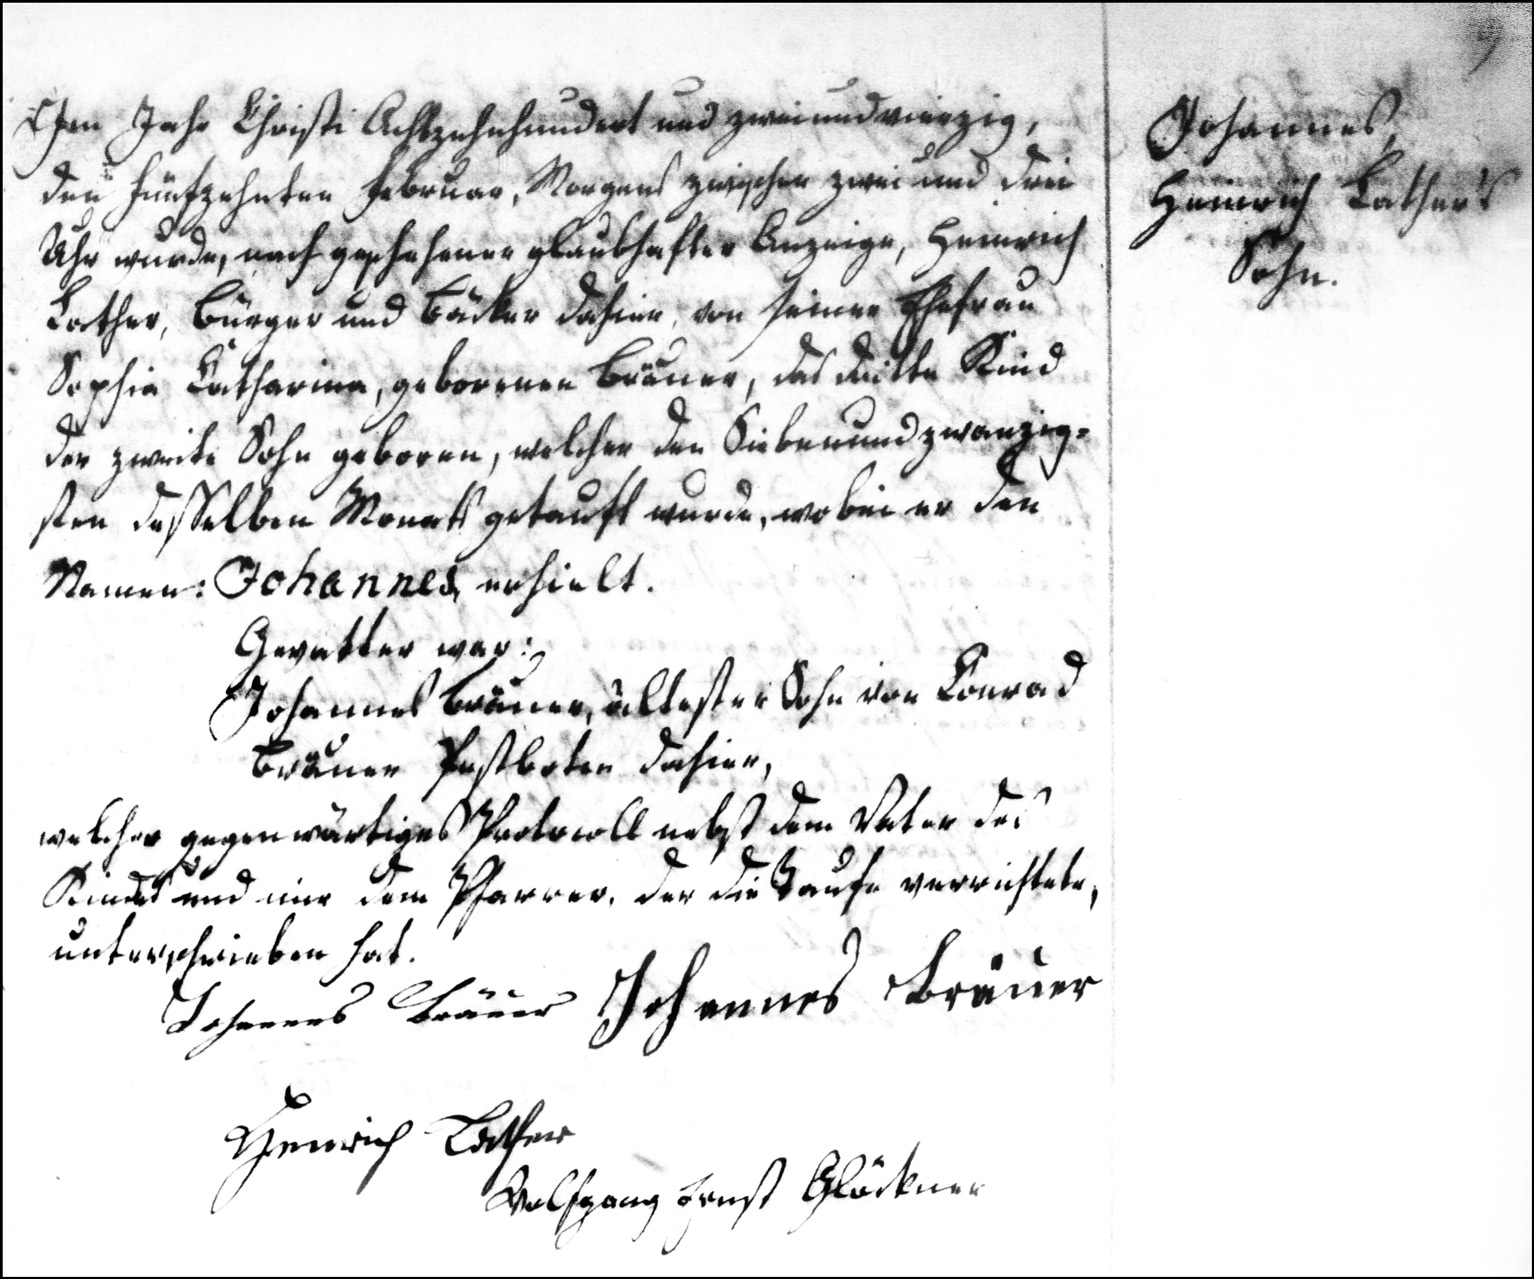 The Birth and Baptismal Record of Johannes Lather - 1842